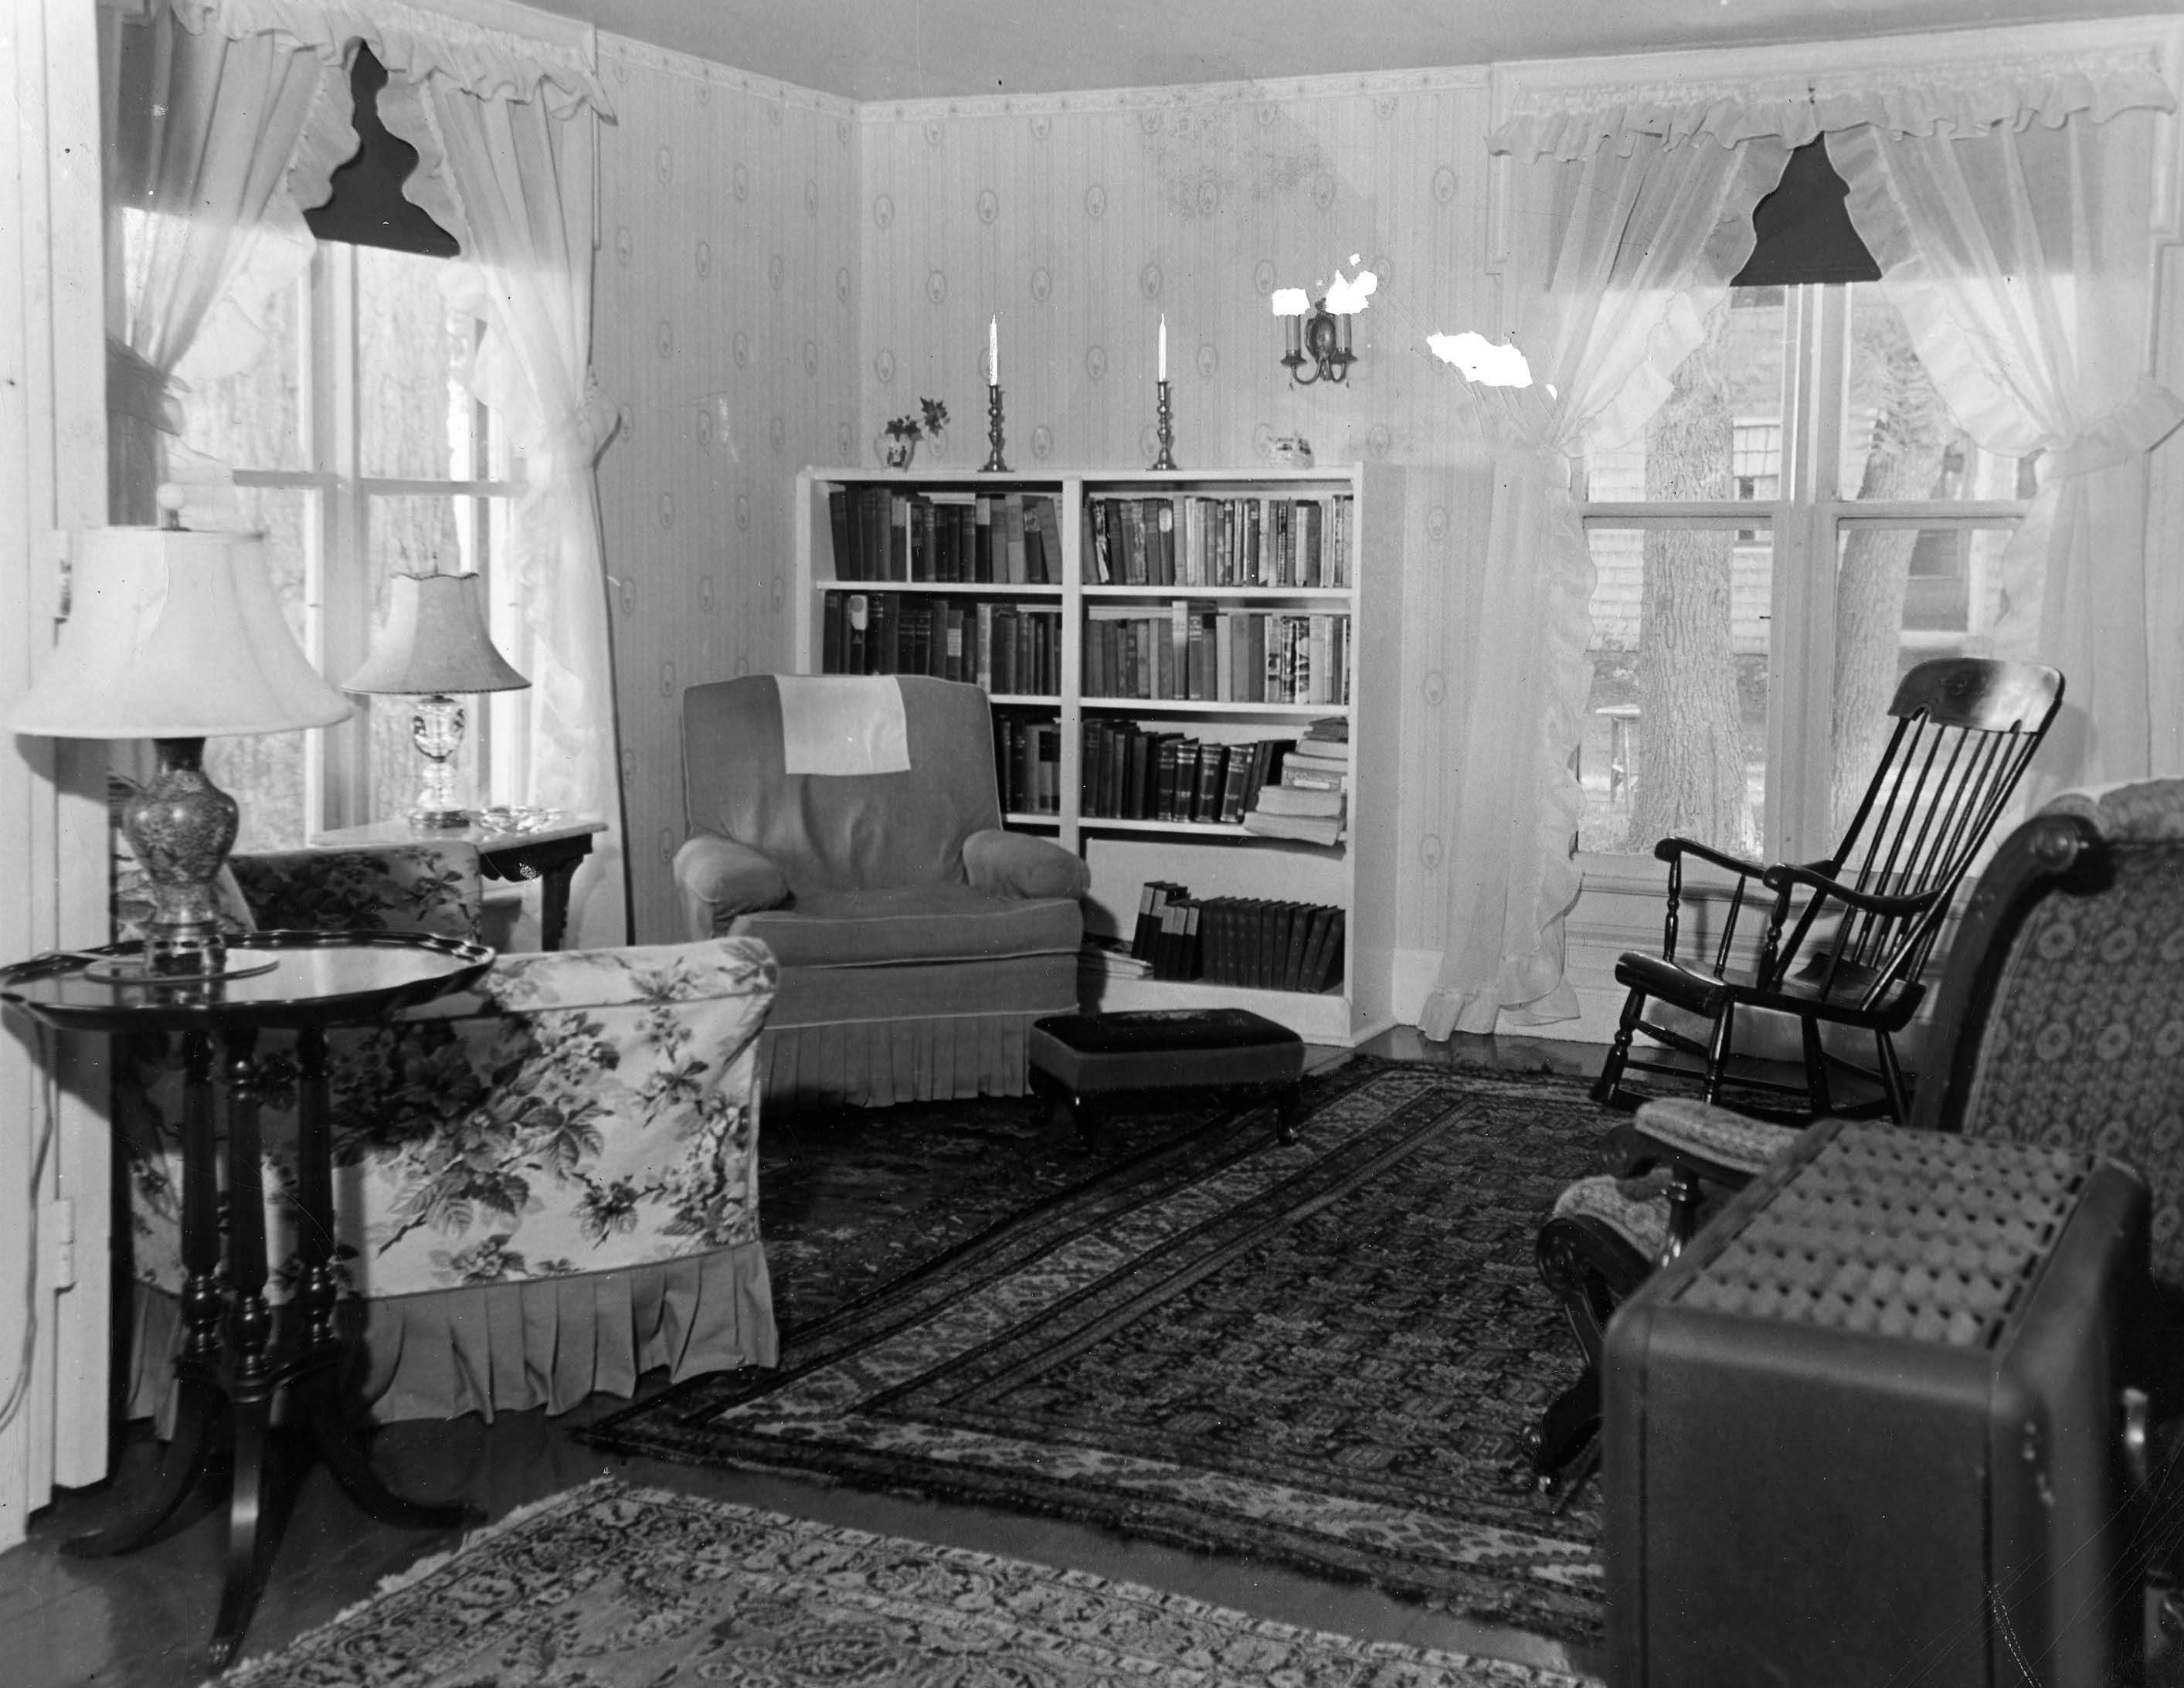 1940s living room photos | The Singing Brook Inn: The ...